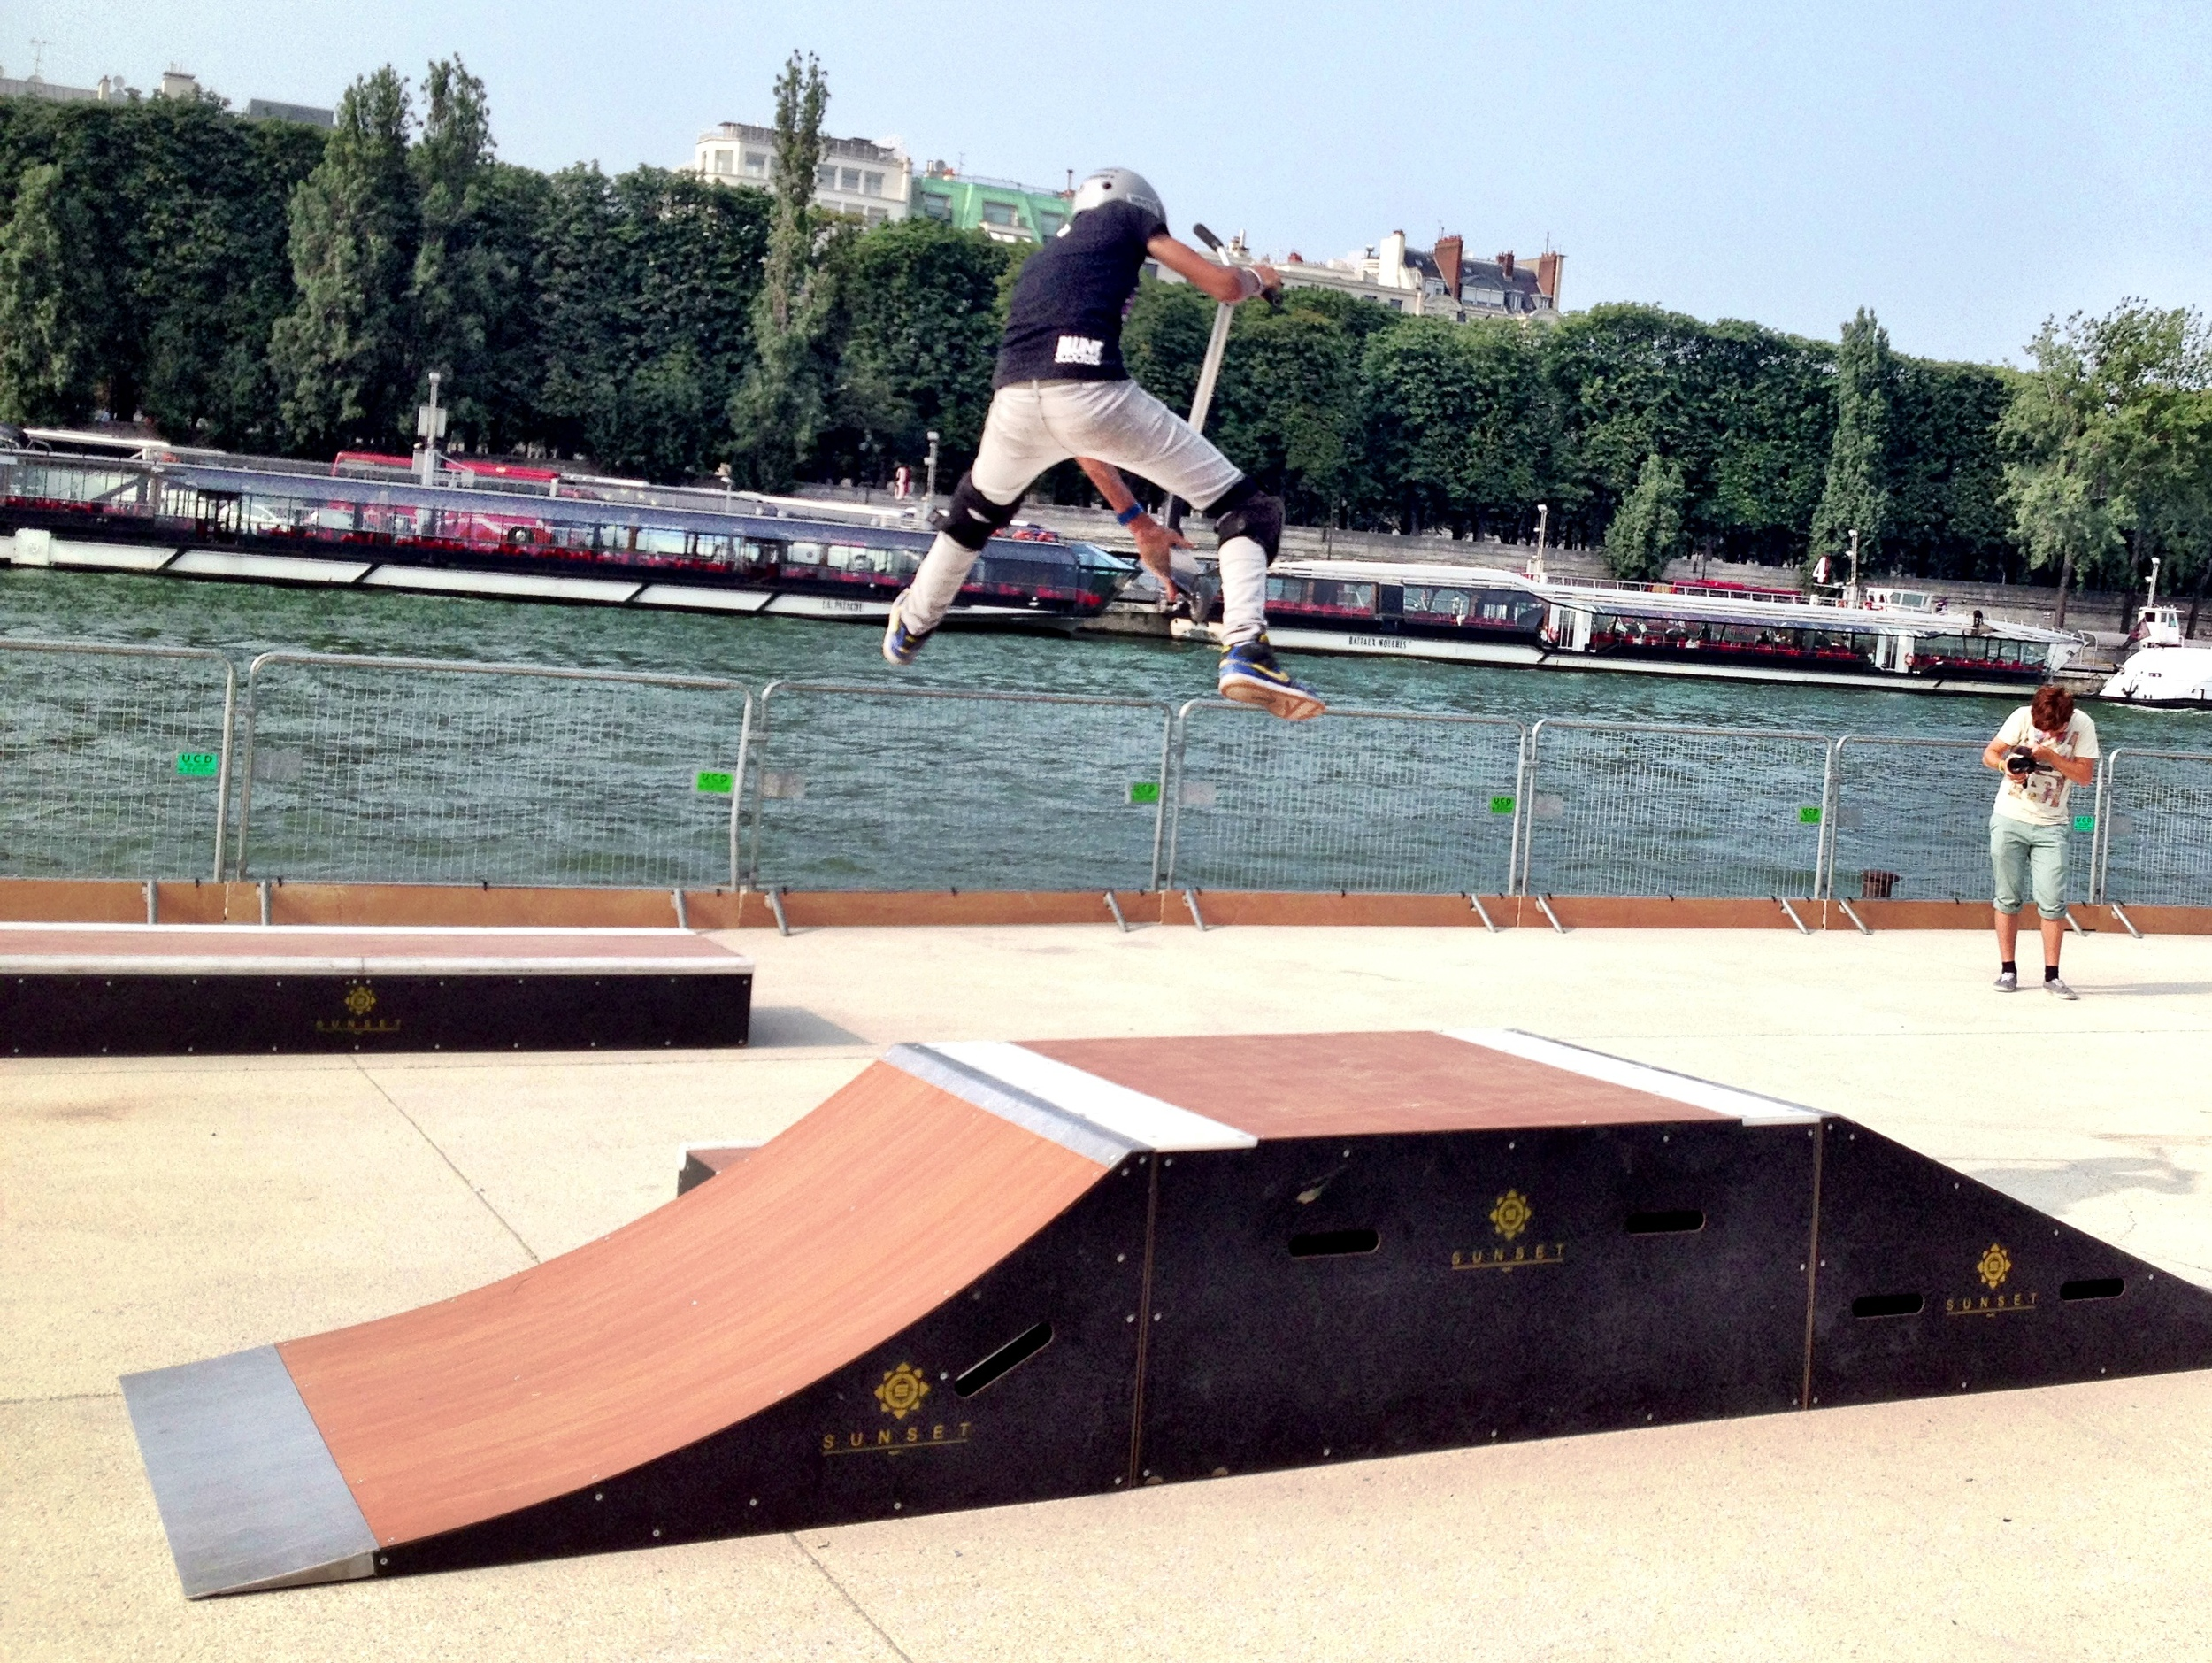 From 19 June - 15 September, Les Berges will feature its own skateboard ramp & roller sports park, welcoming skateboards, BMX, roller blades and kick scooters.